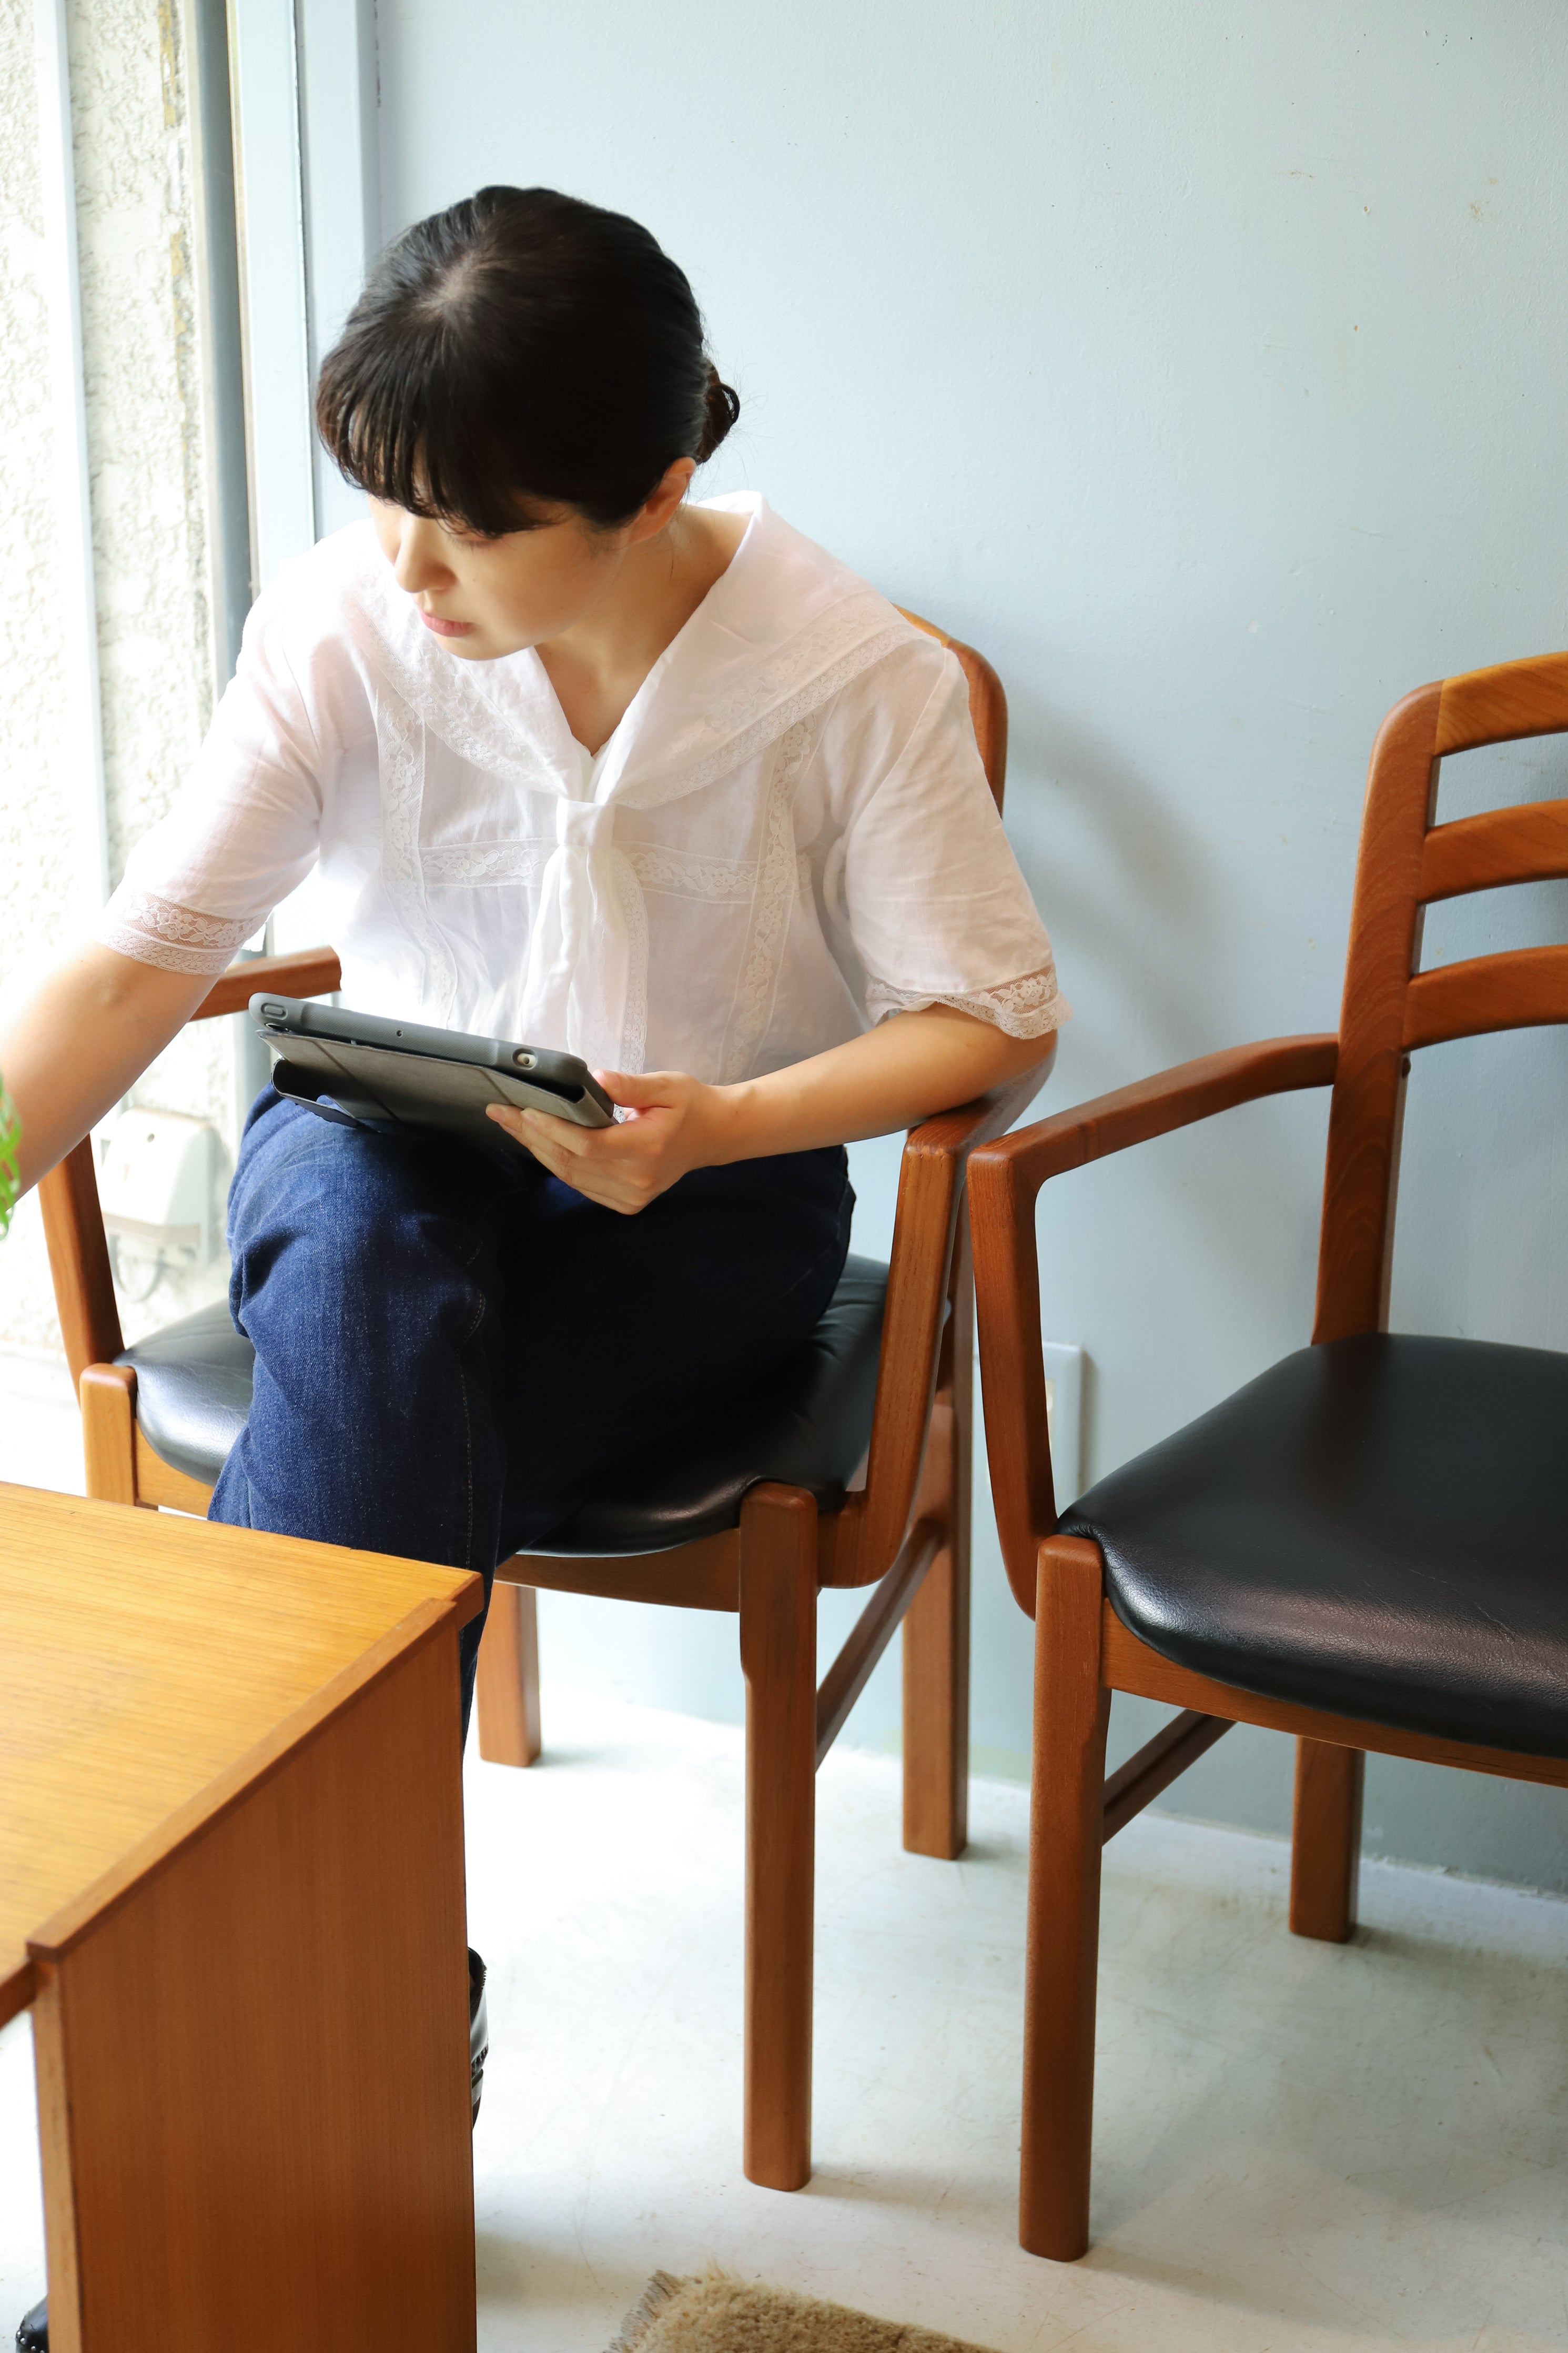 Danish Vintage Teakwood Arm Chair/デンマークヴィンテージ アームチェア チーク材